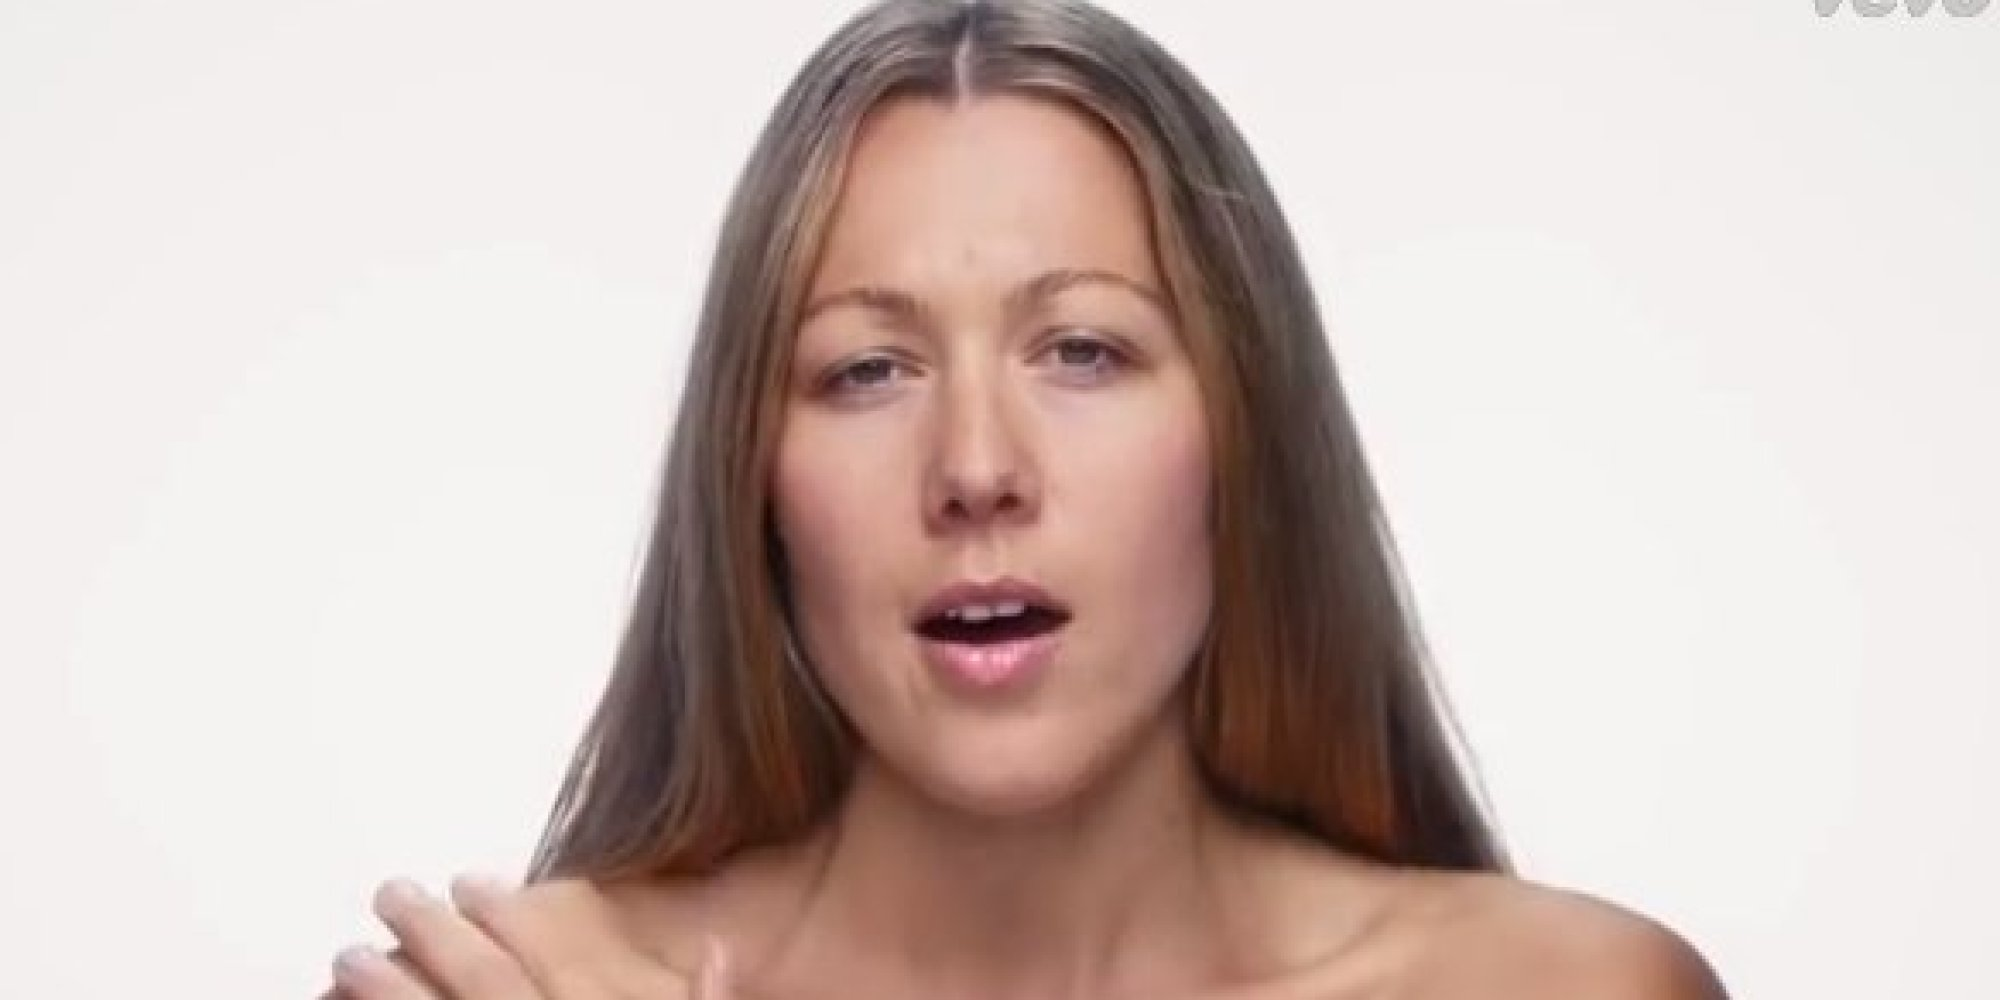 colbie caillat rallies against photoshop in  u0026 39 try u0026 39  music video